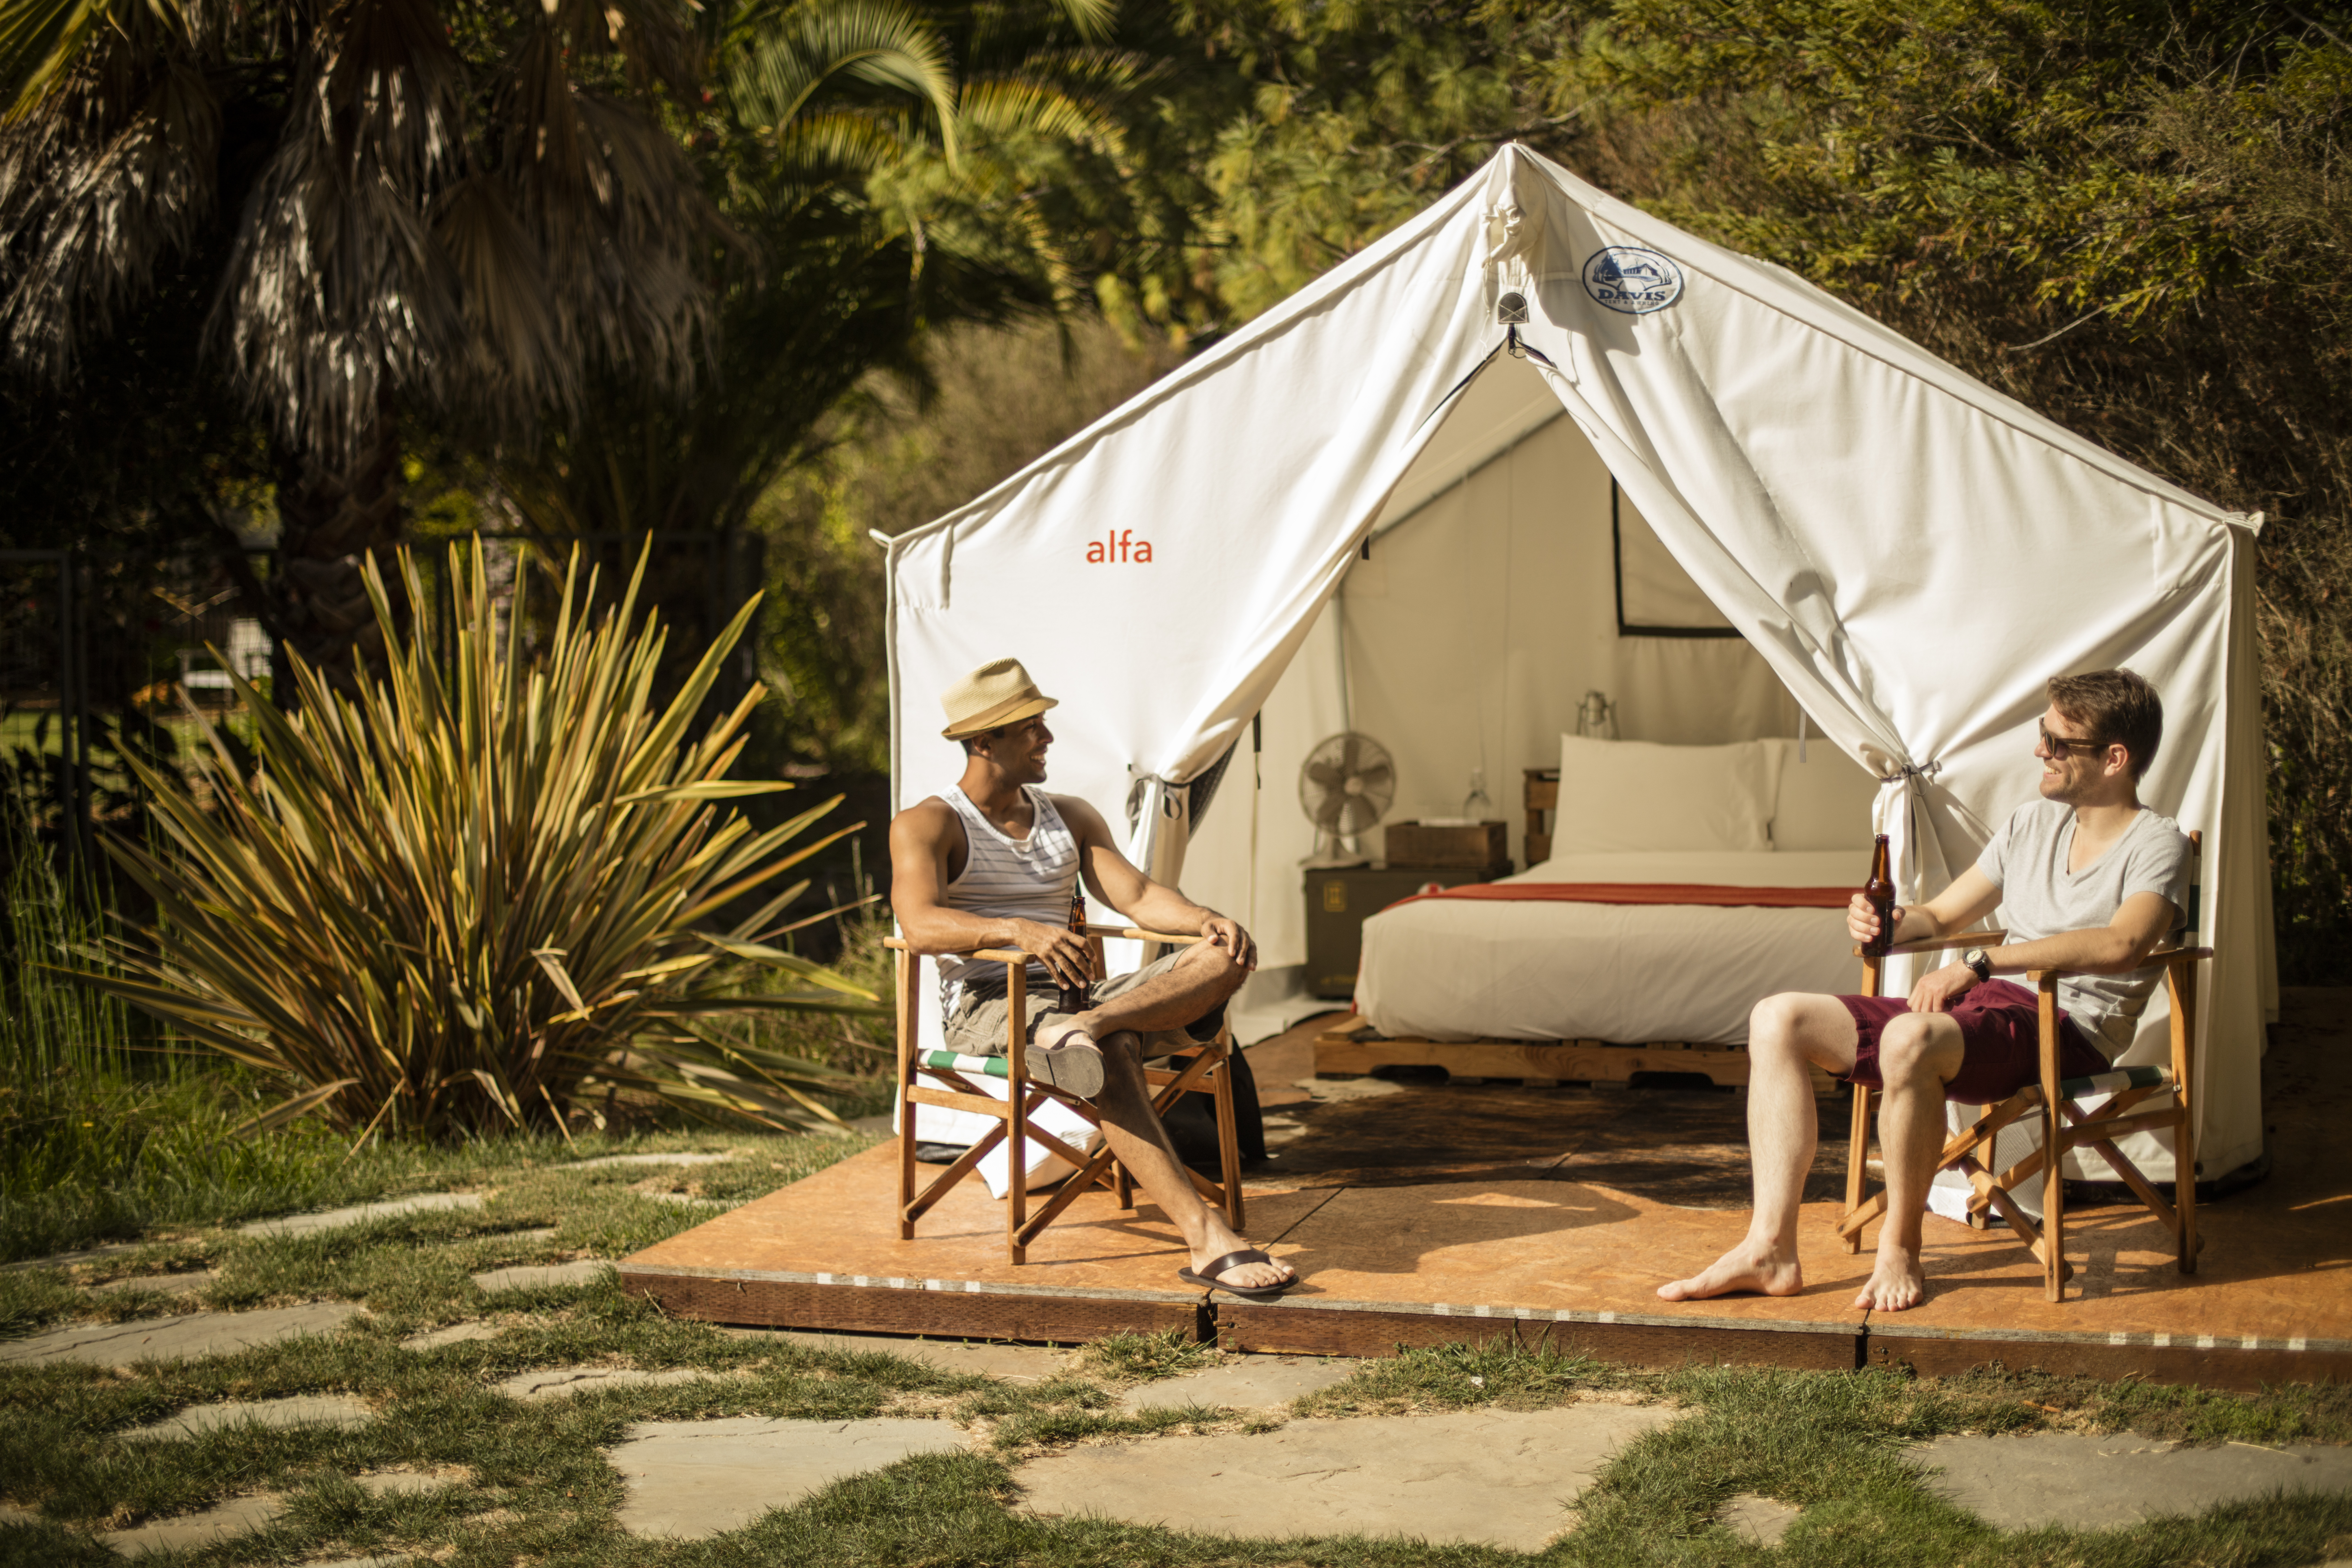 Go glamping at Boon Hotel + Spa in Guerneville, Sonoma County, California